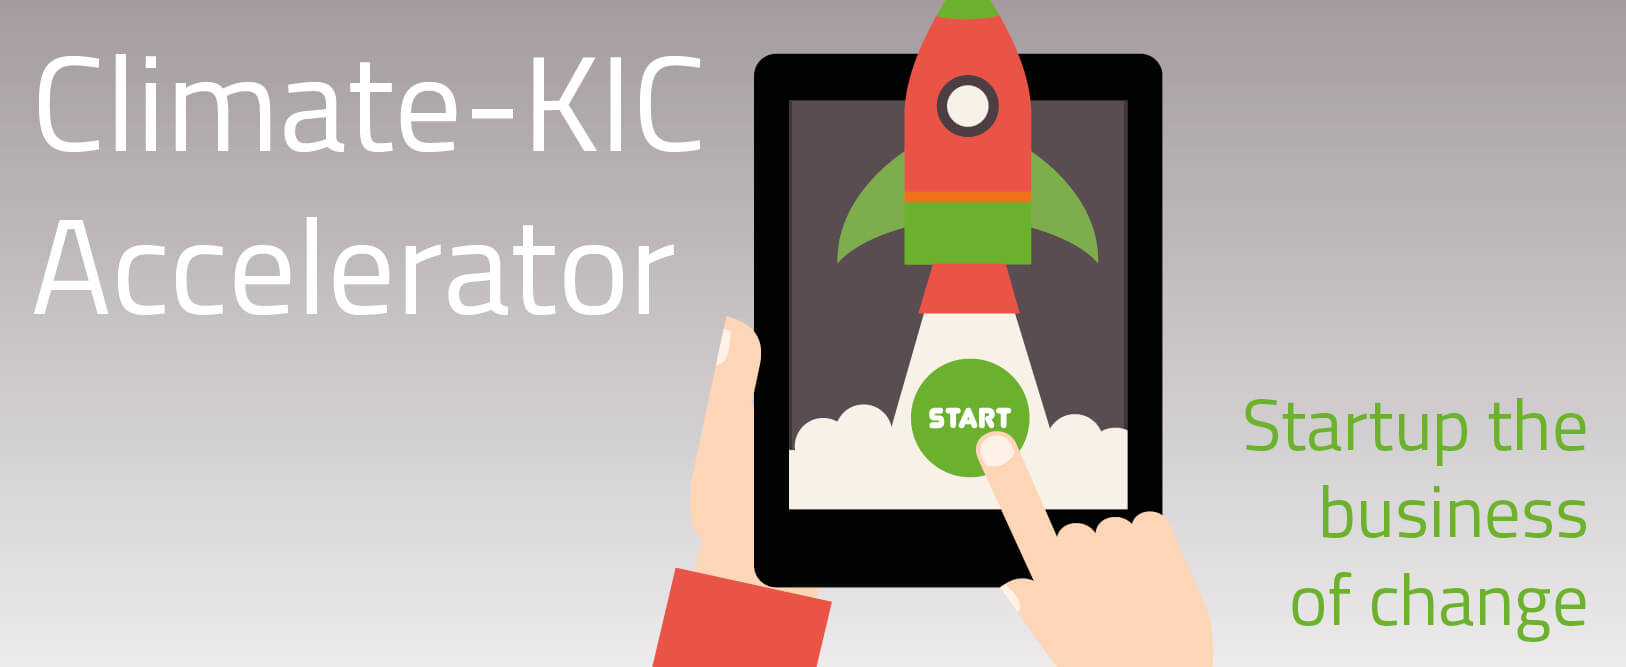 Kollect have been awarded Climate-KIC Accelerator funding for the breakthrough idea to help counter climate change